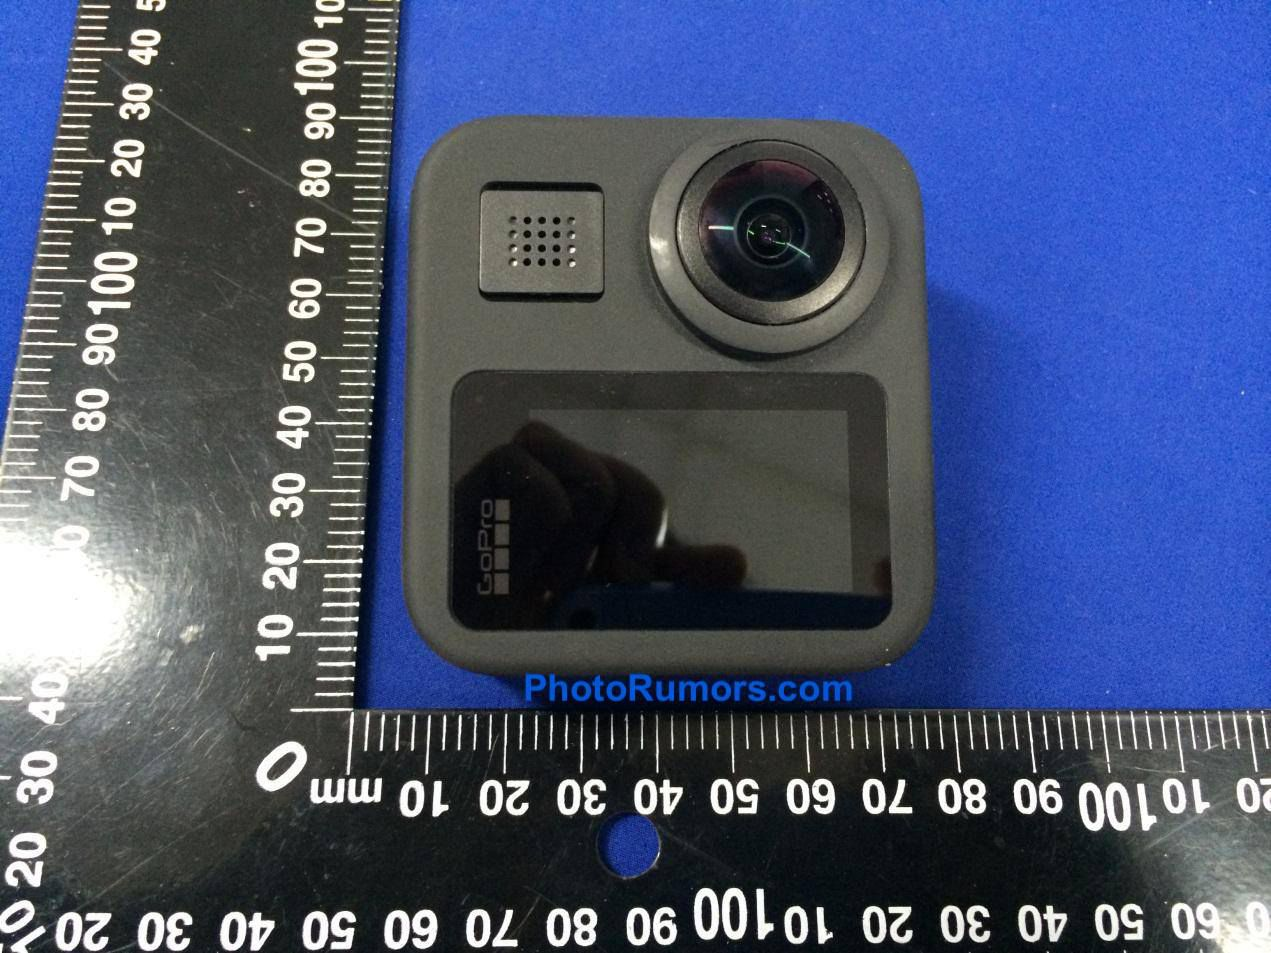 GoPro's Hero 8 and Max 360 camera pictured in new leak - The